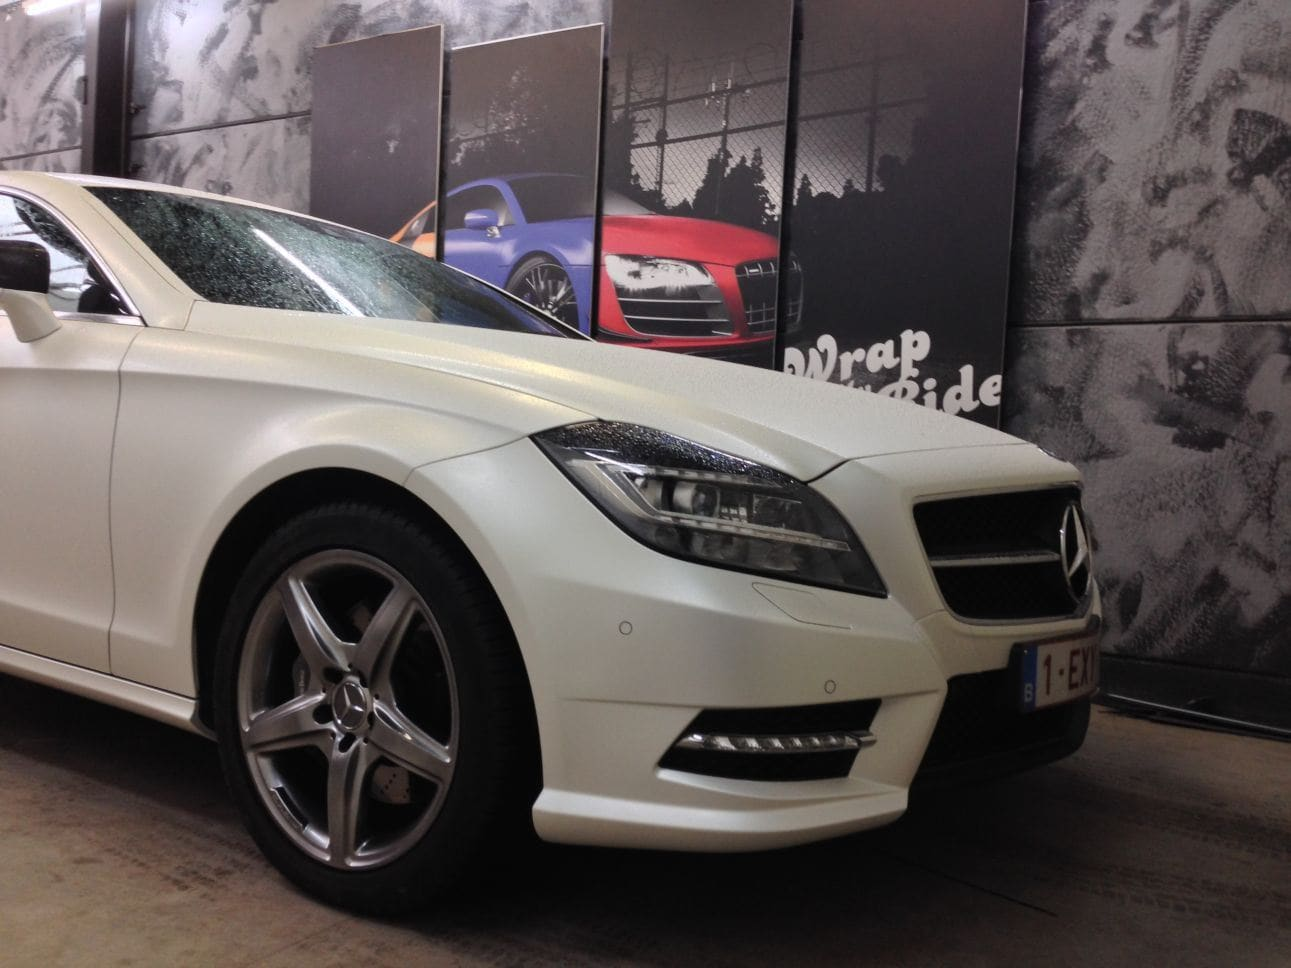 Mercedes CLS met White Satin Pearl Wrap, Carwrapping door Wrapmyride.nu Foto-nr:6221, ©2021